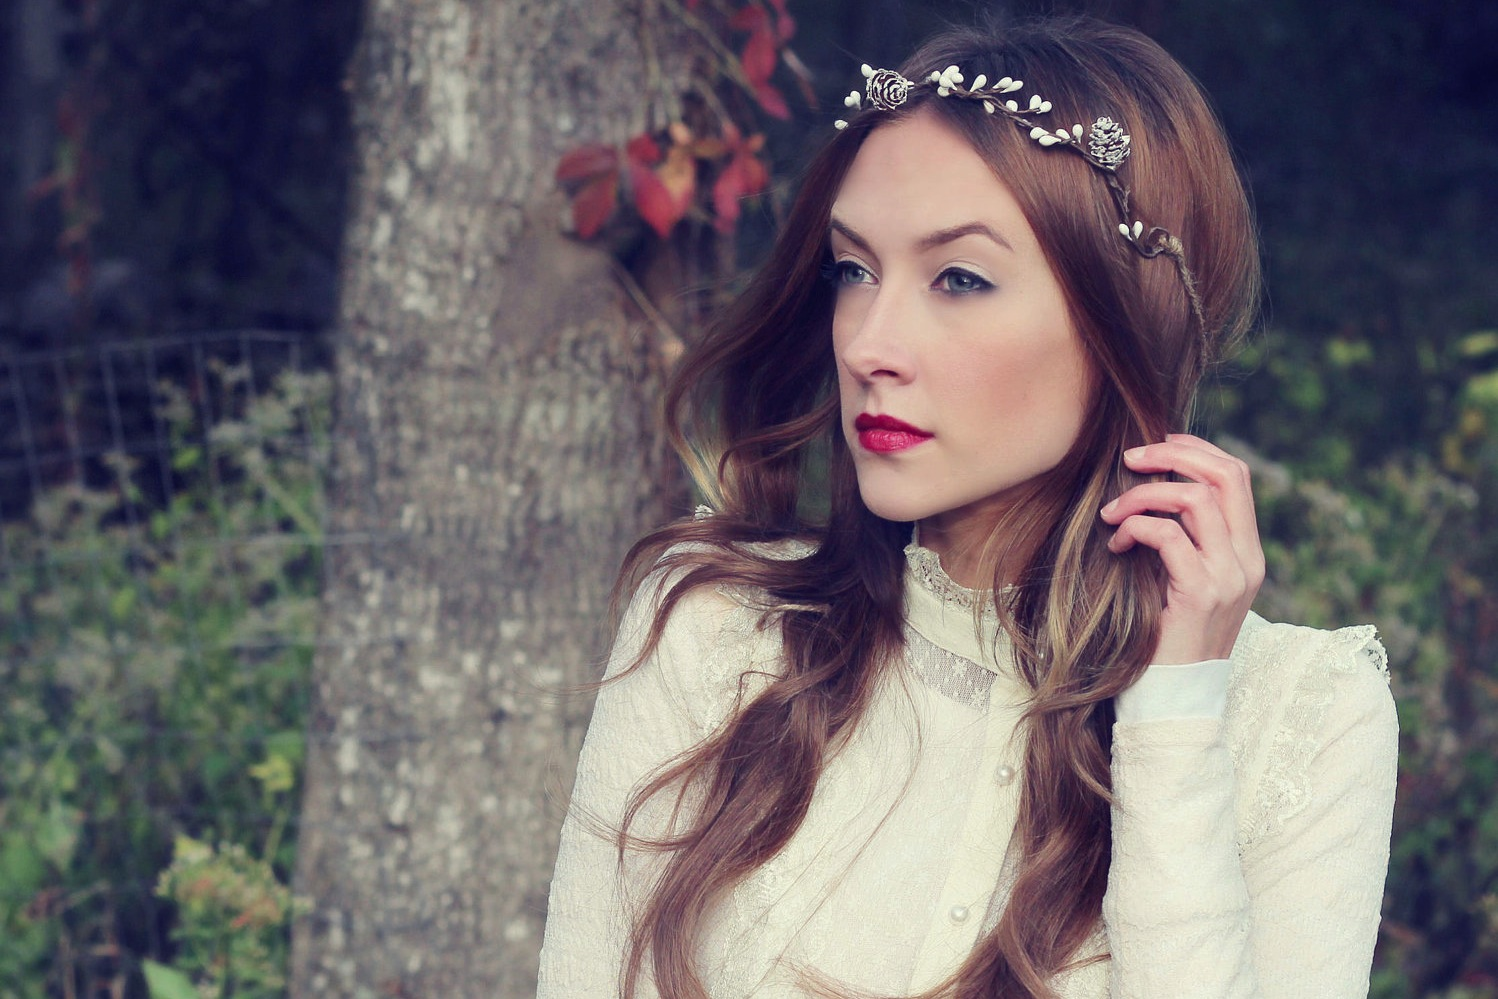 Rustic-wedding-ideas-woodland-weddings-by-etsy-headband.original